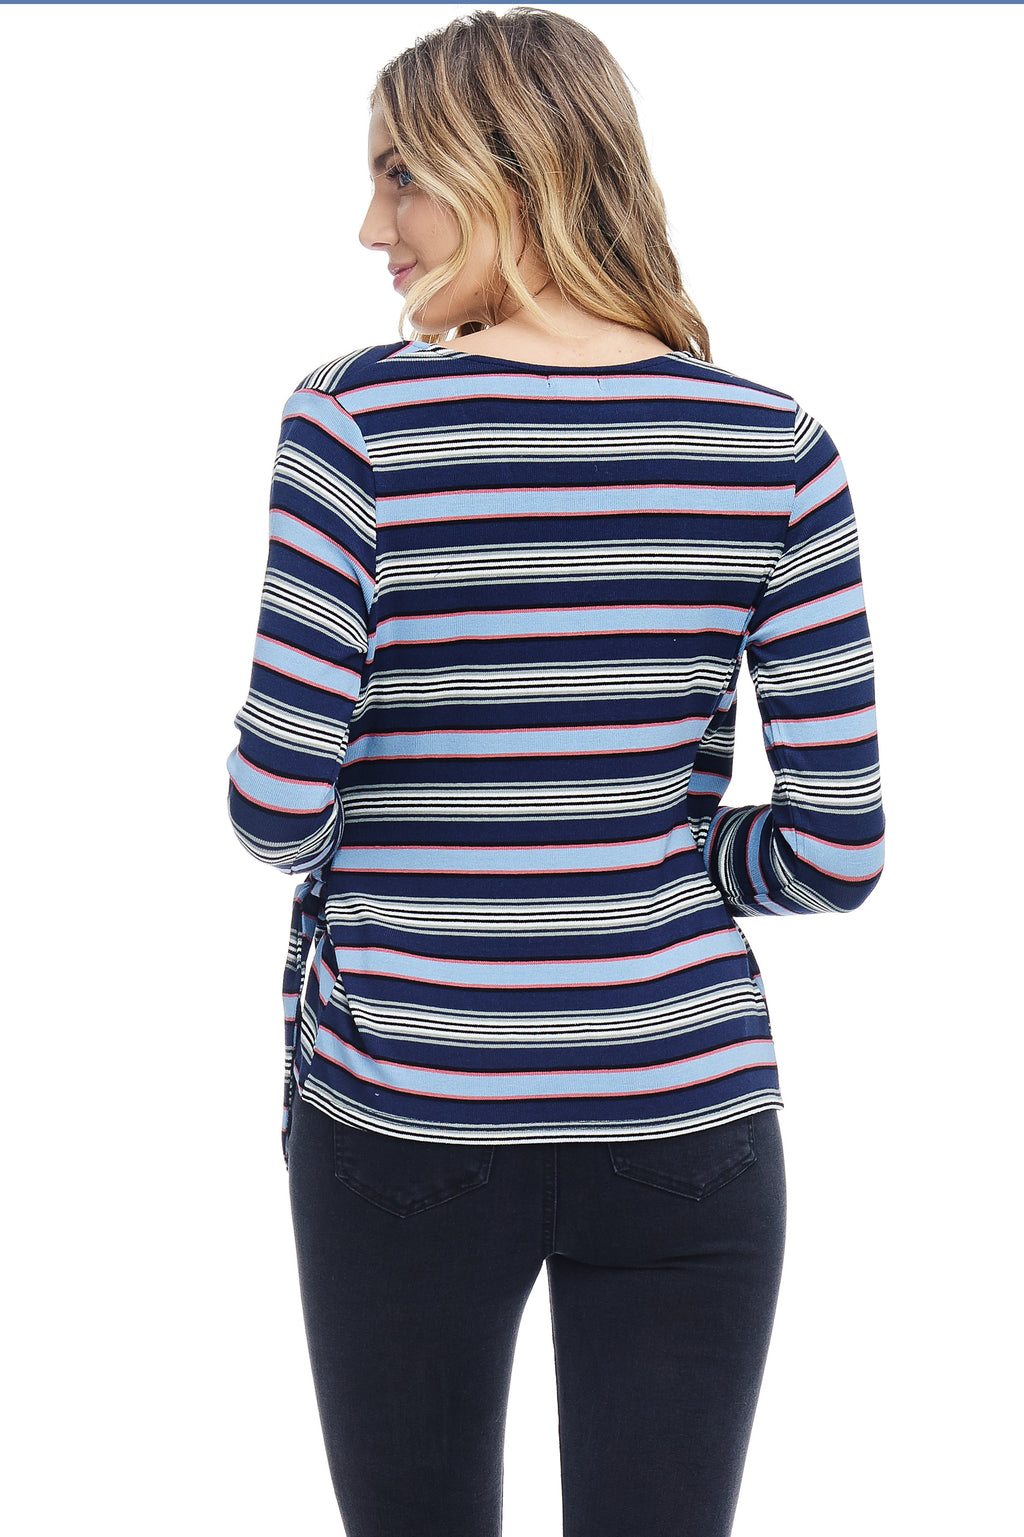 W18-056 Striped Wrap Top